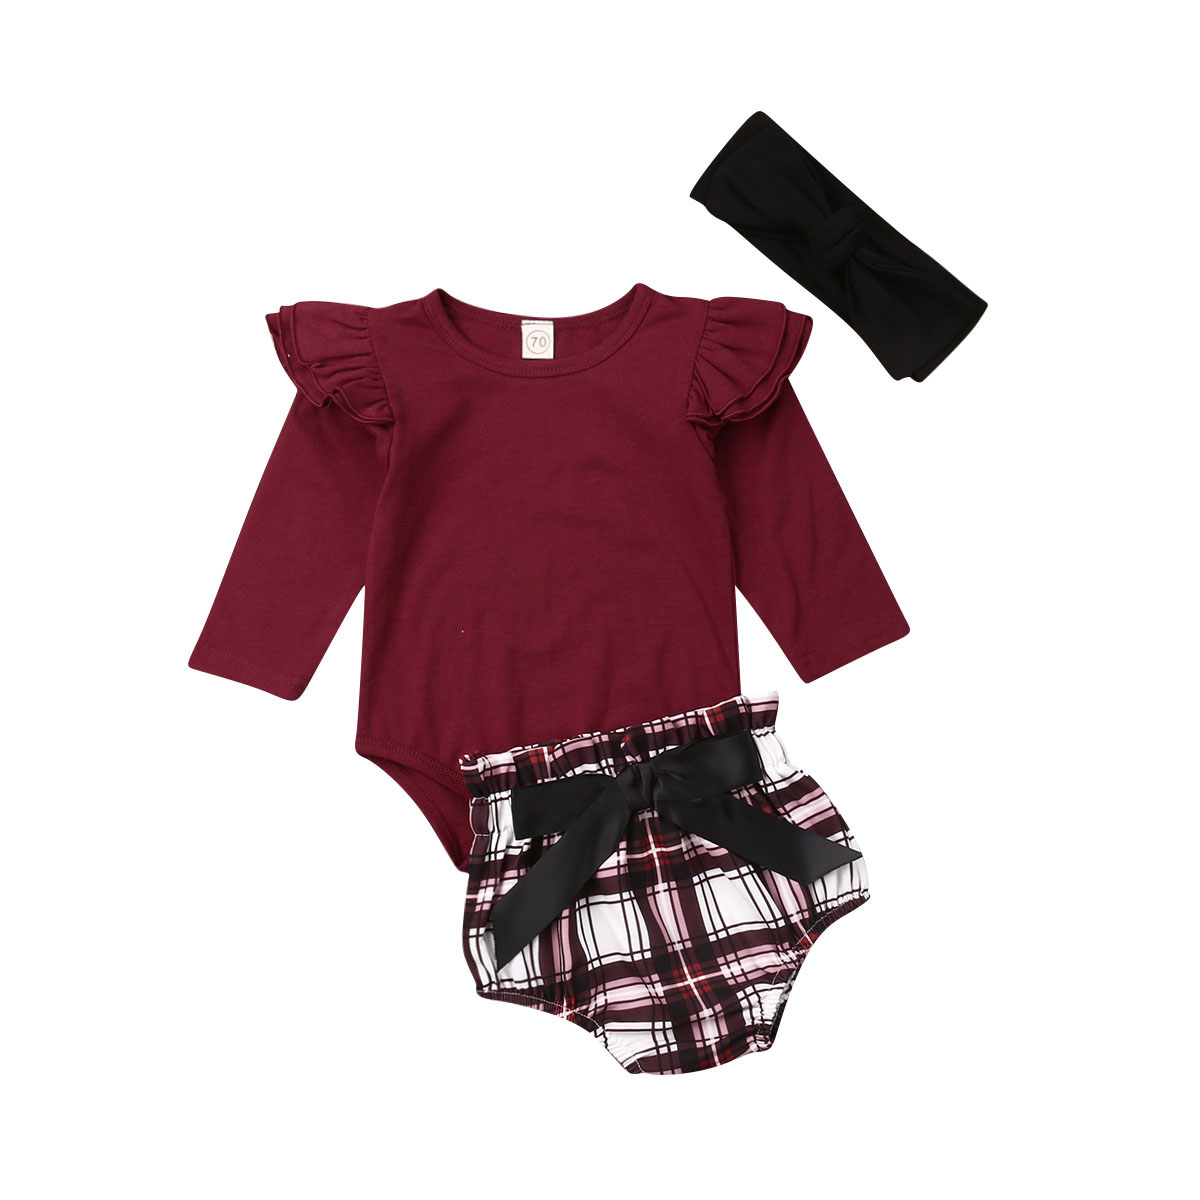 3Pcs Skirt Set Infant Baby Girls Outfits Long Sleeve Romper Top Plaid Dress Headband Clothes